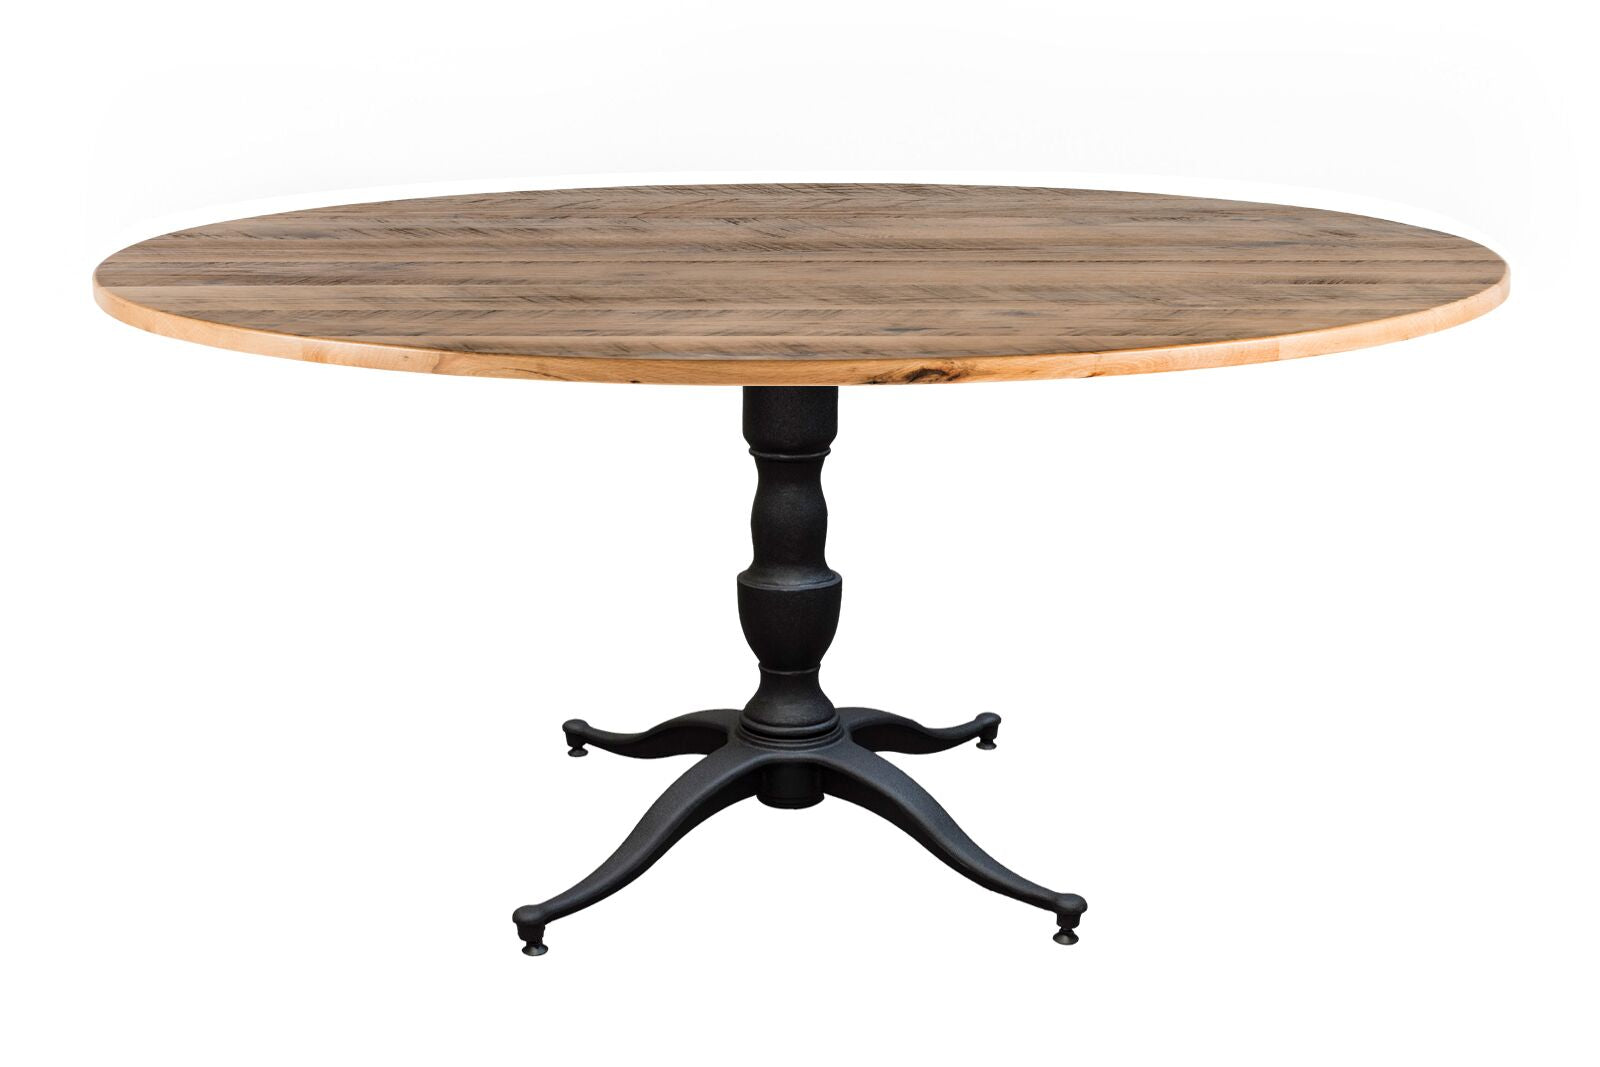 "Round Wood Tables | Francesca Table | Natural Ash | Black | Diameter 42 |  Height 30 | 1.5"" Standard kingston-krafts-zinc-tables."